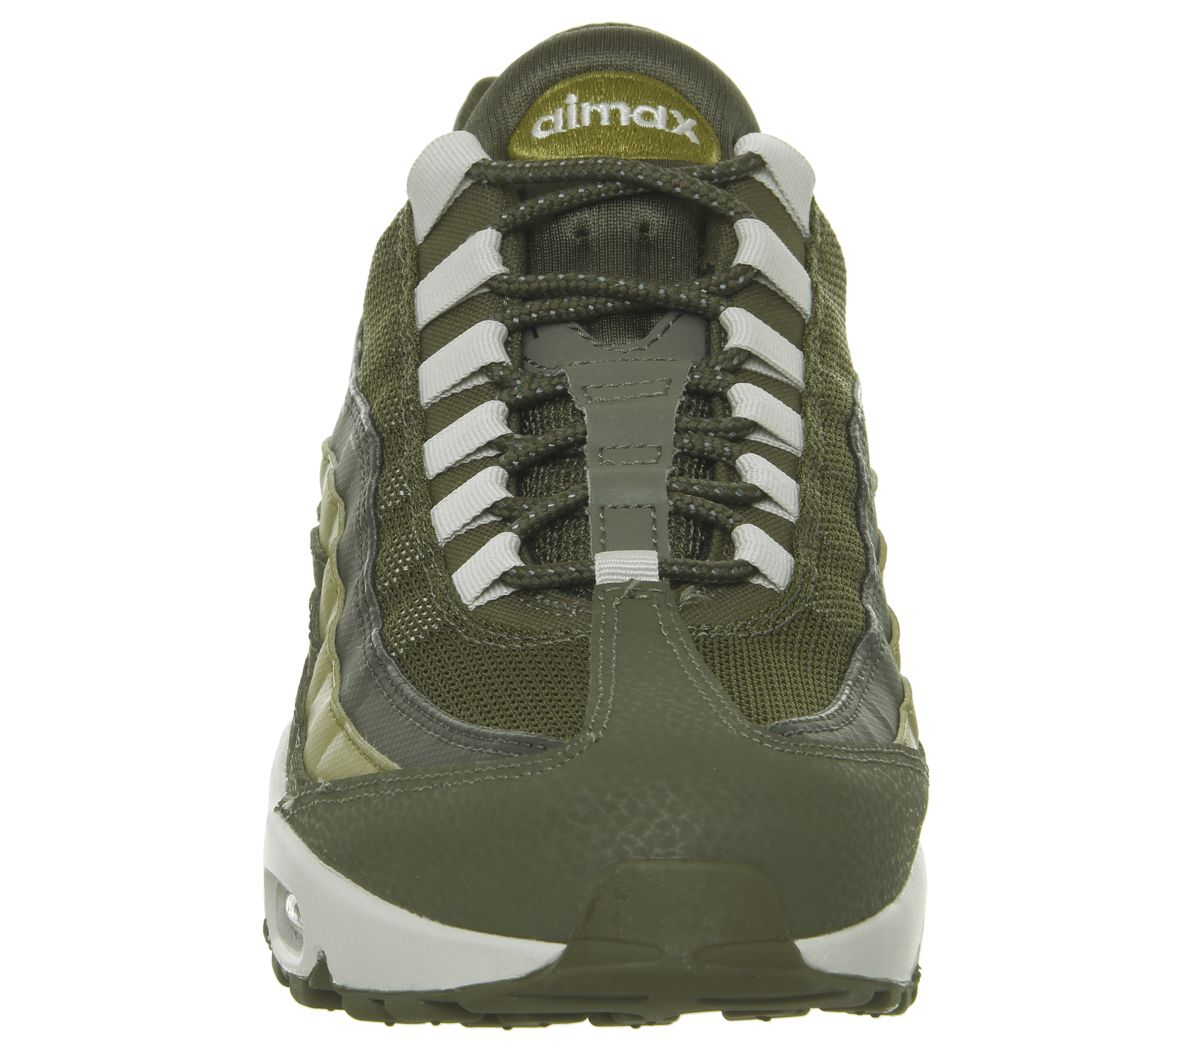 970f1bd046 Nike Air Max 95 Trainers Olive Canvas Bone Golden Moss - His trainers